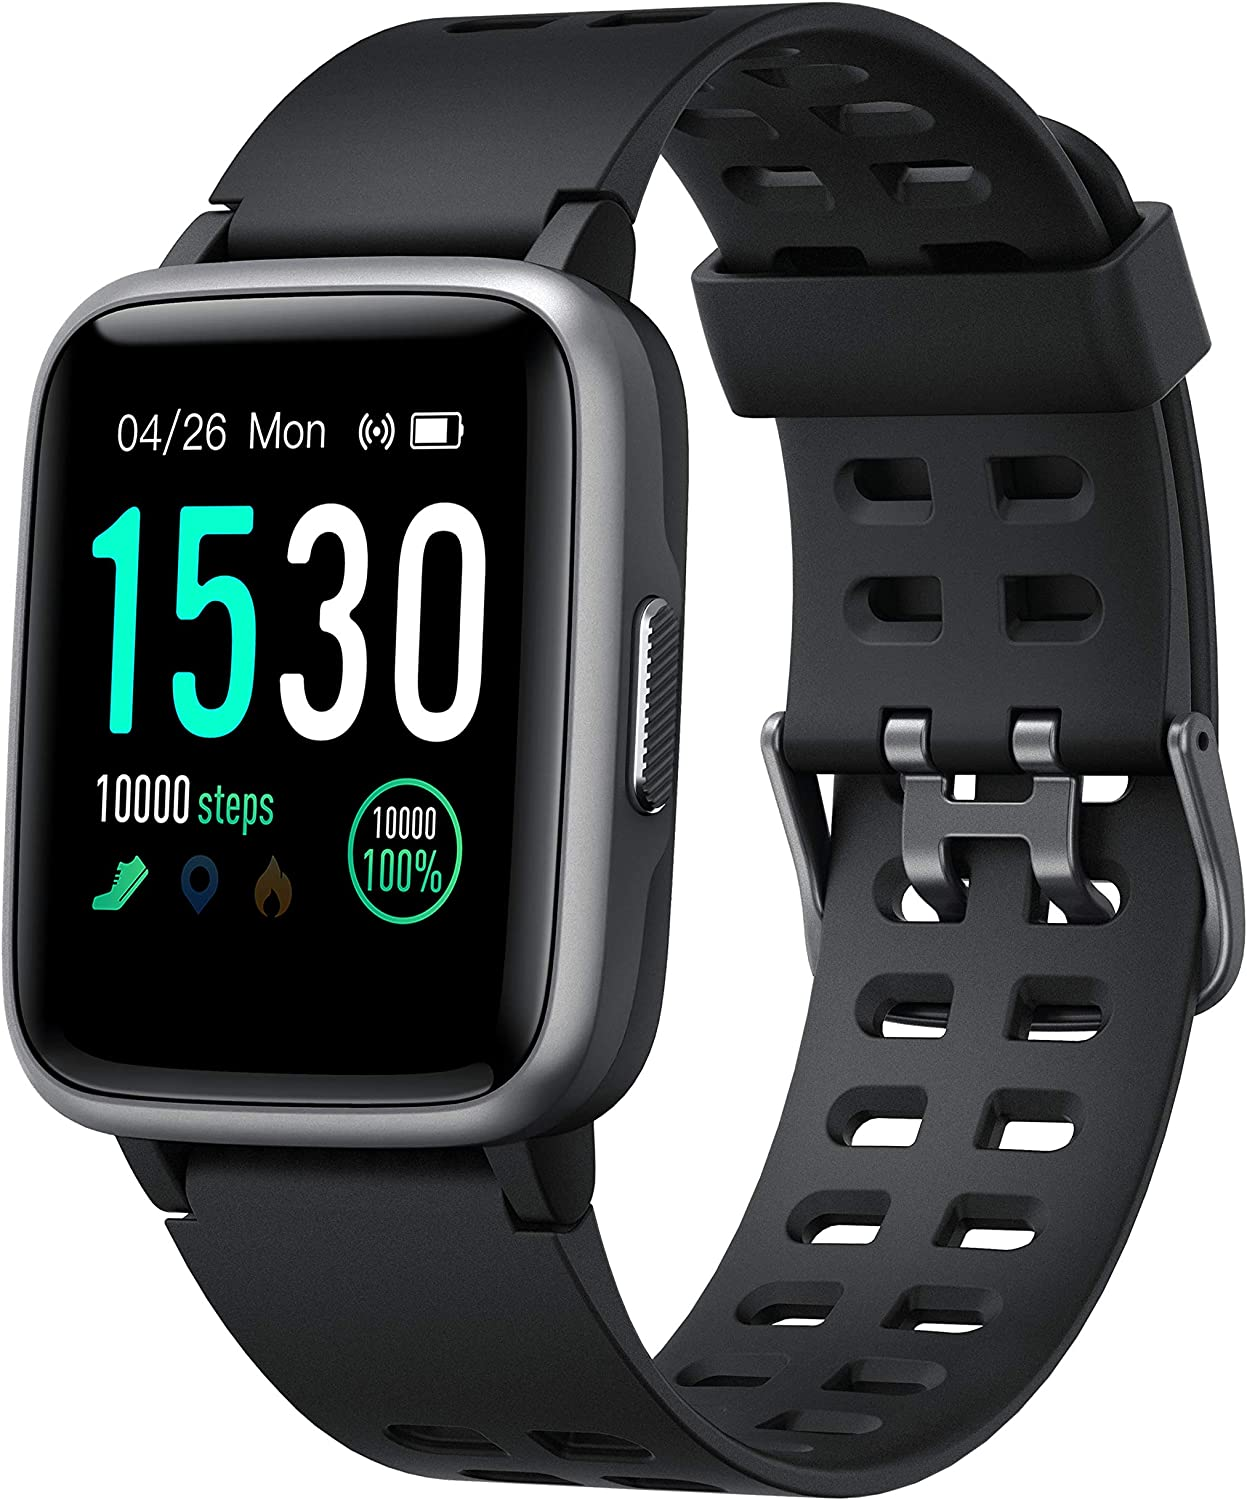 Smart Watch for Android Phone iphone,Arbily Smartwatch with Heart Rate Monitor Waterproof Swimming Smart Watch with Sleep Tracker Pedometer Step ...